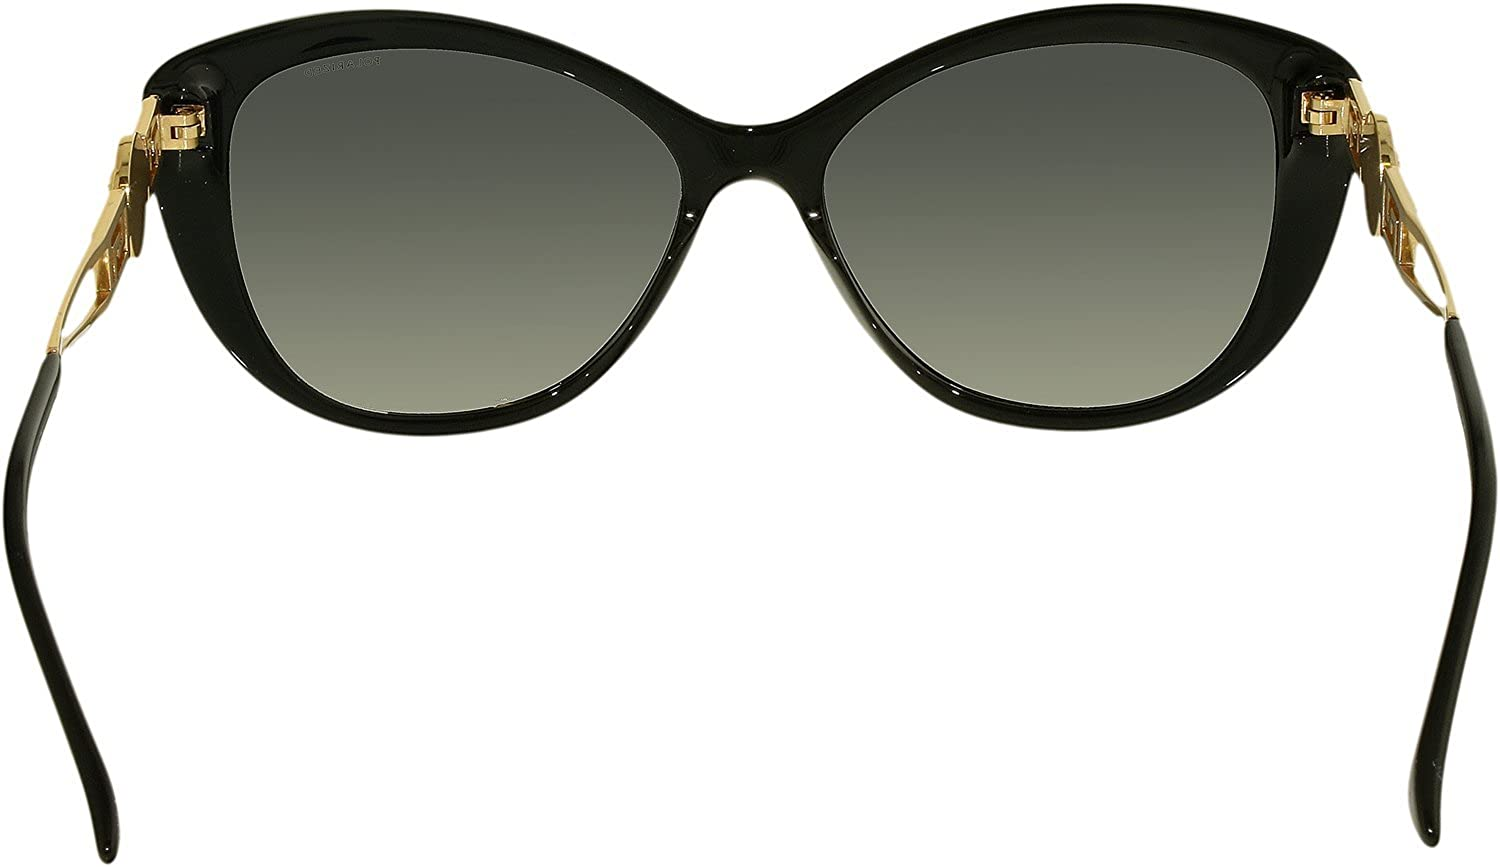 1637190353 Amazon.com  Versace Womens Sunglasses (VE4295 57) Black Grey Acetate -  Polarized - 57mm  Versace  Clothing